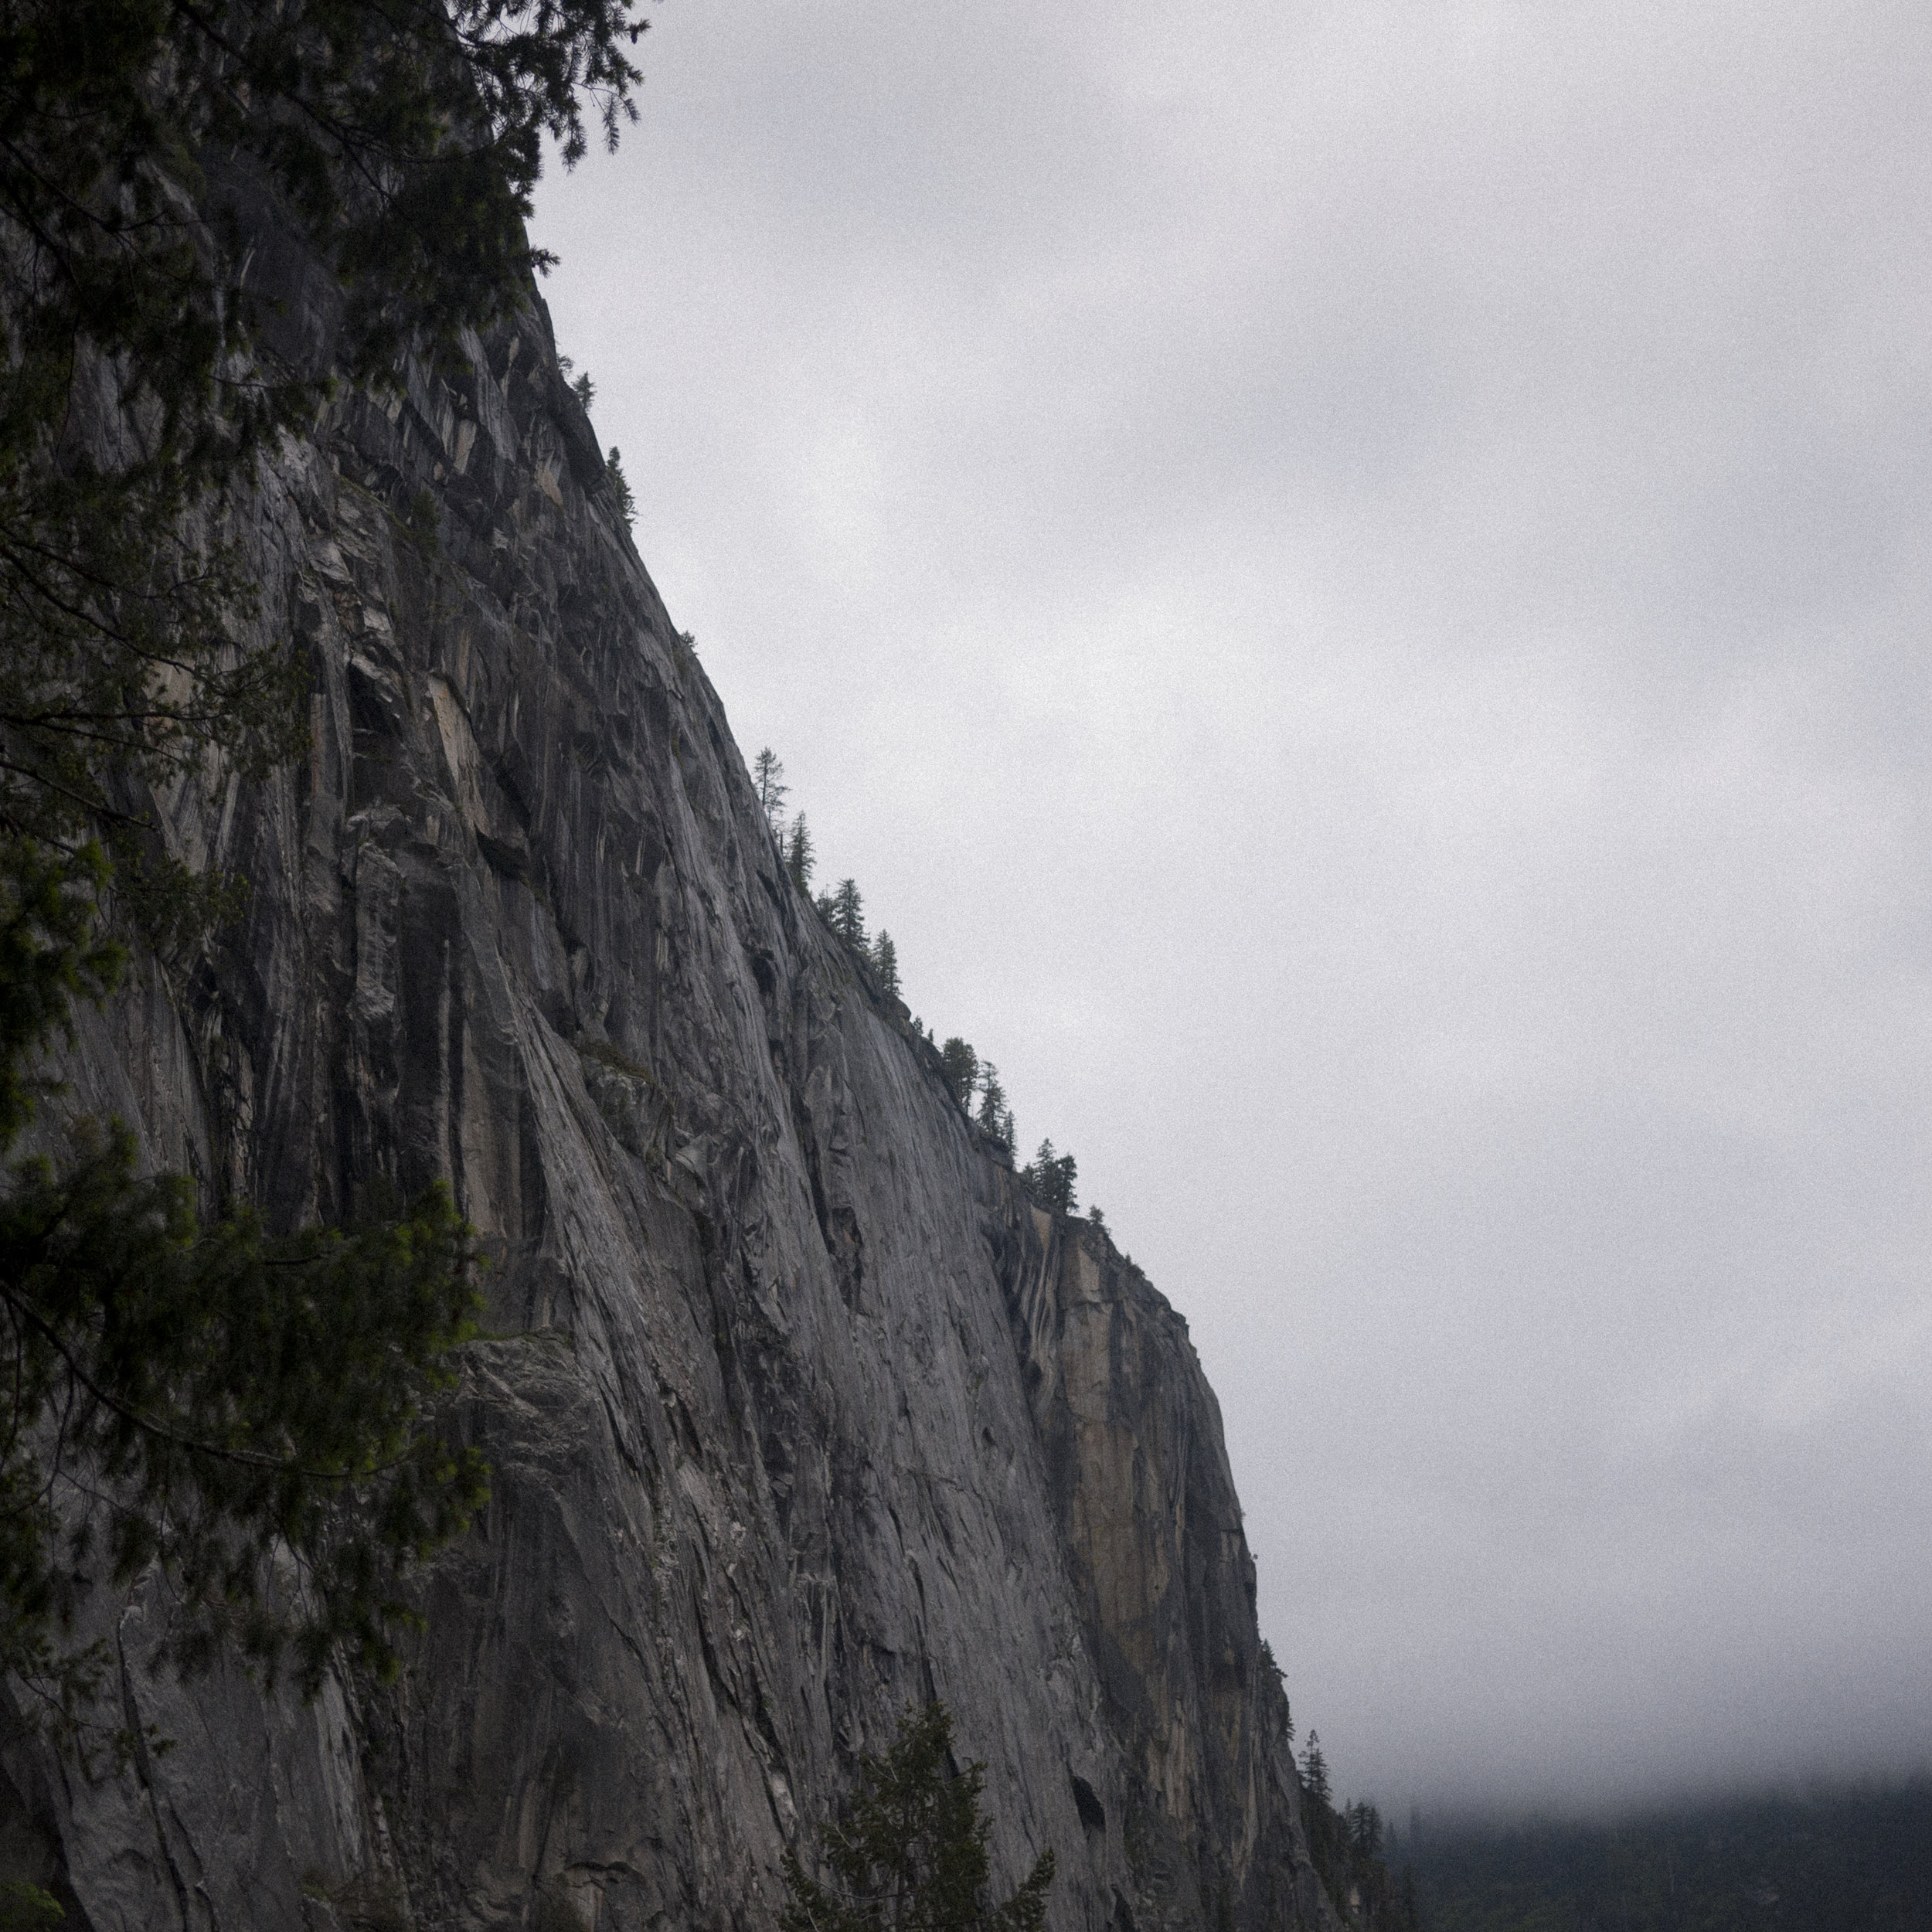 Yosemite shifts between open and inviting to dark and menacing in seconds